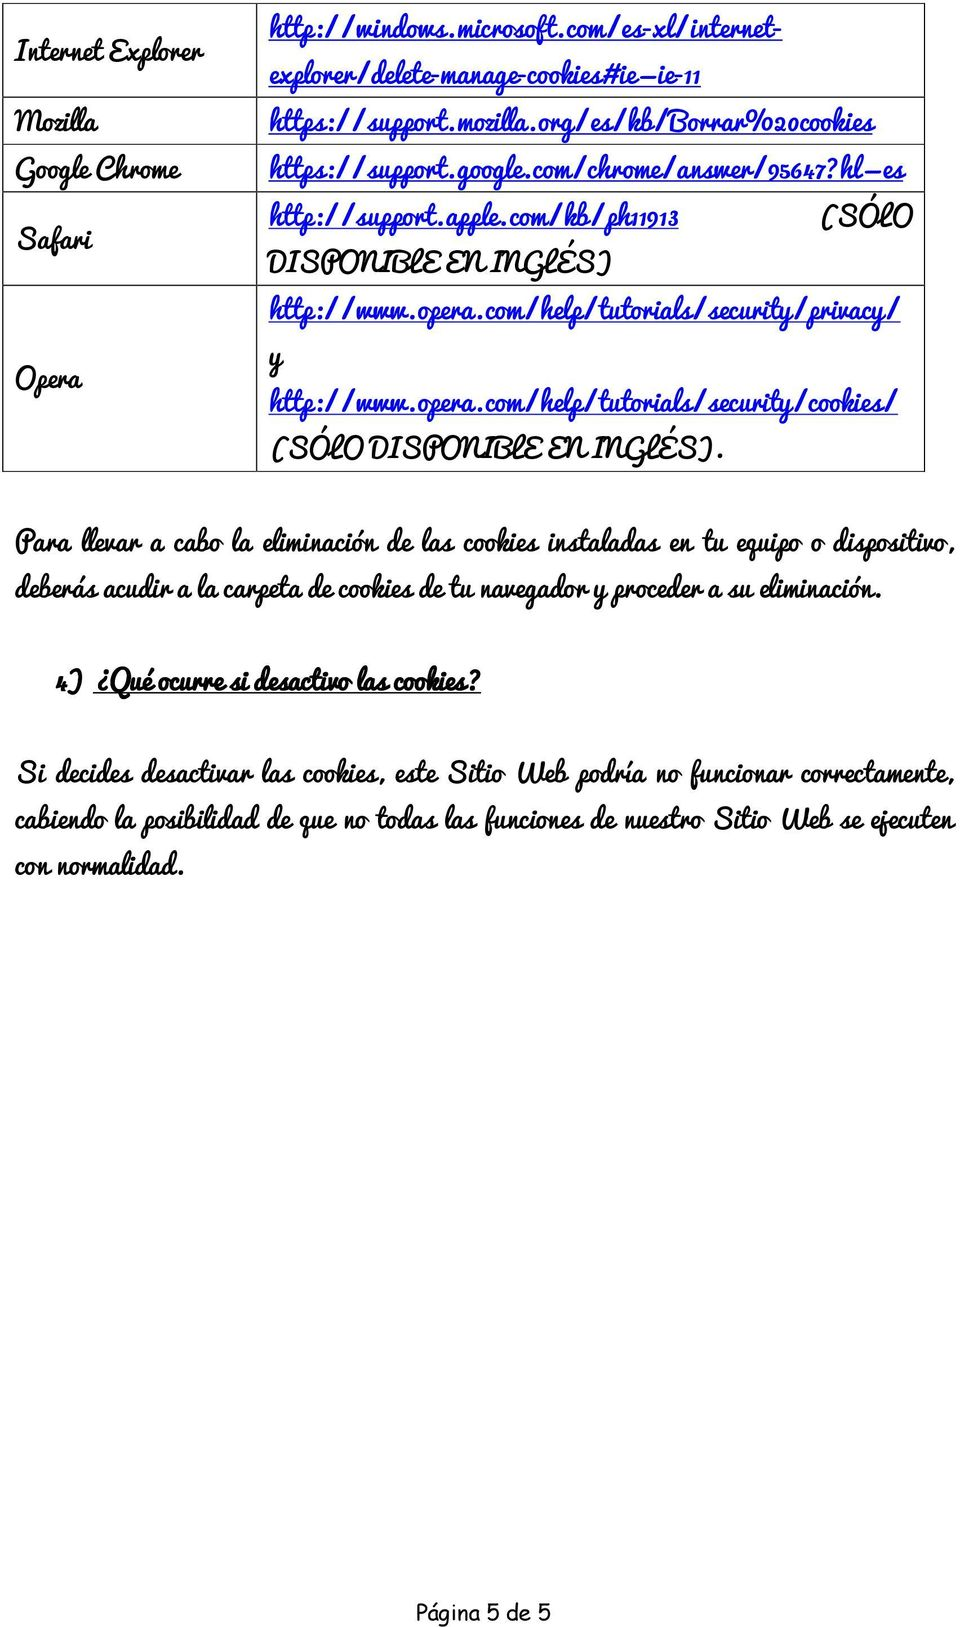 com/help/tutorials/security/privacy/ y http://www.opera.com/help/tutorials/security/cookies/ (SÓLO DISPONIBLE EN INGLÉS).